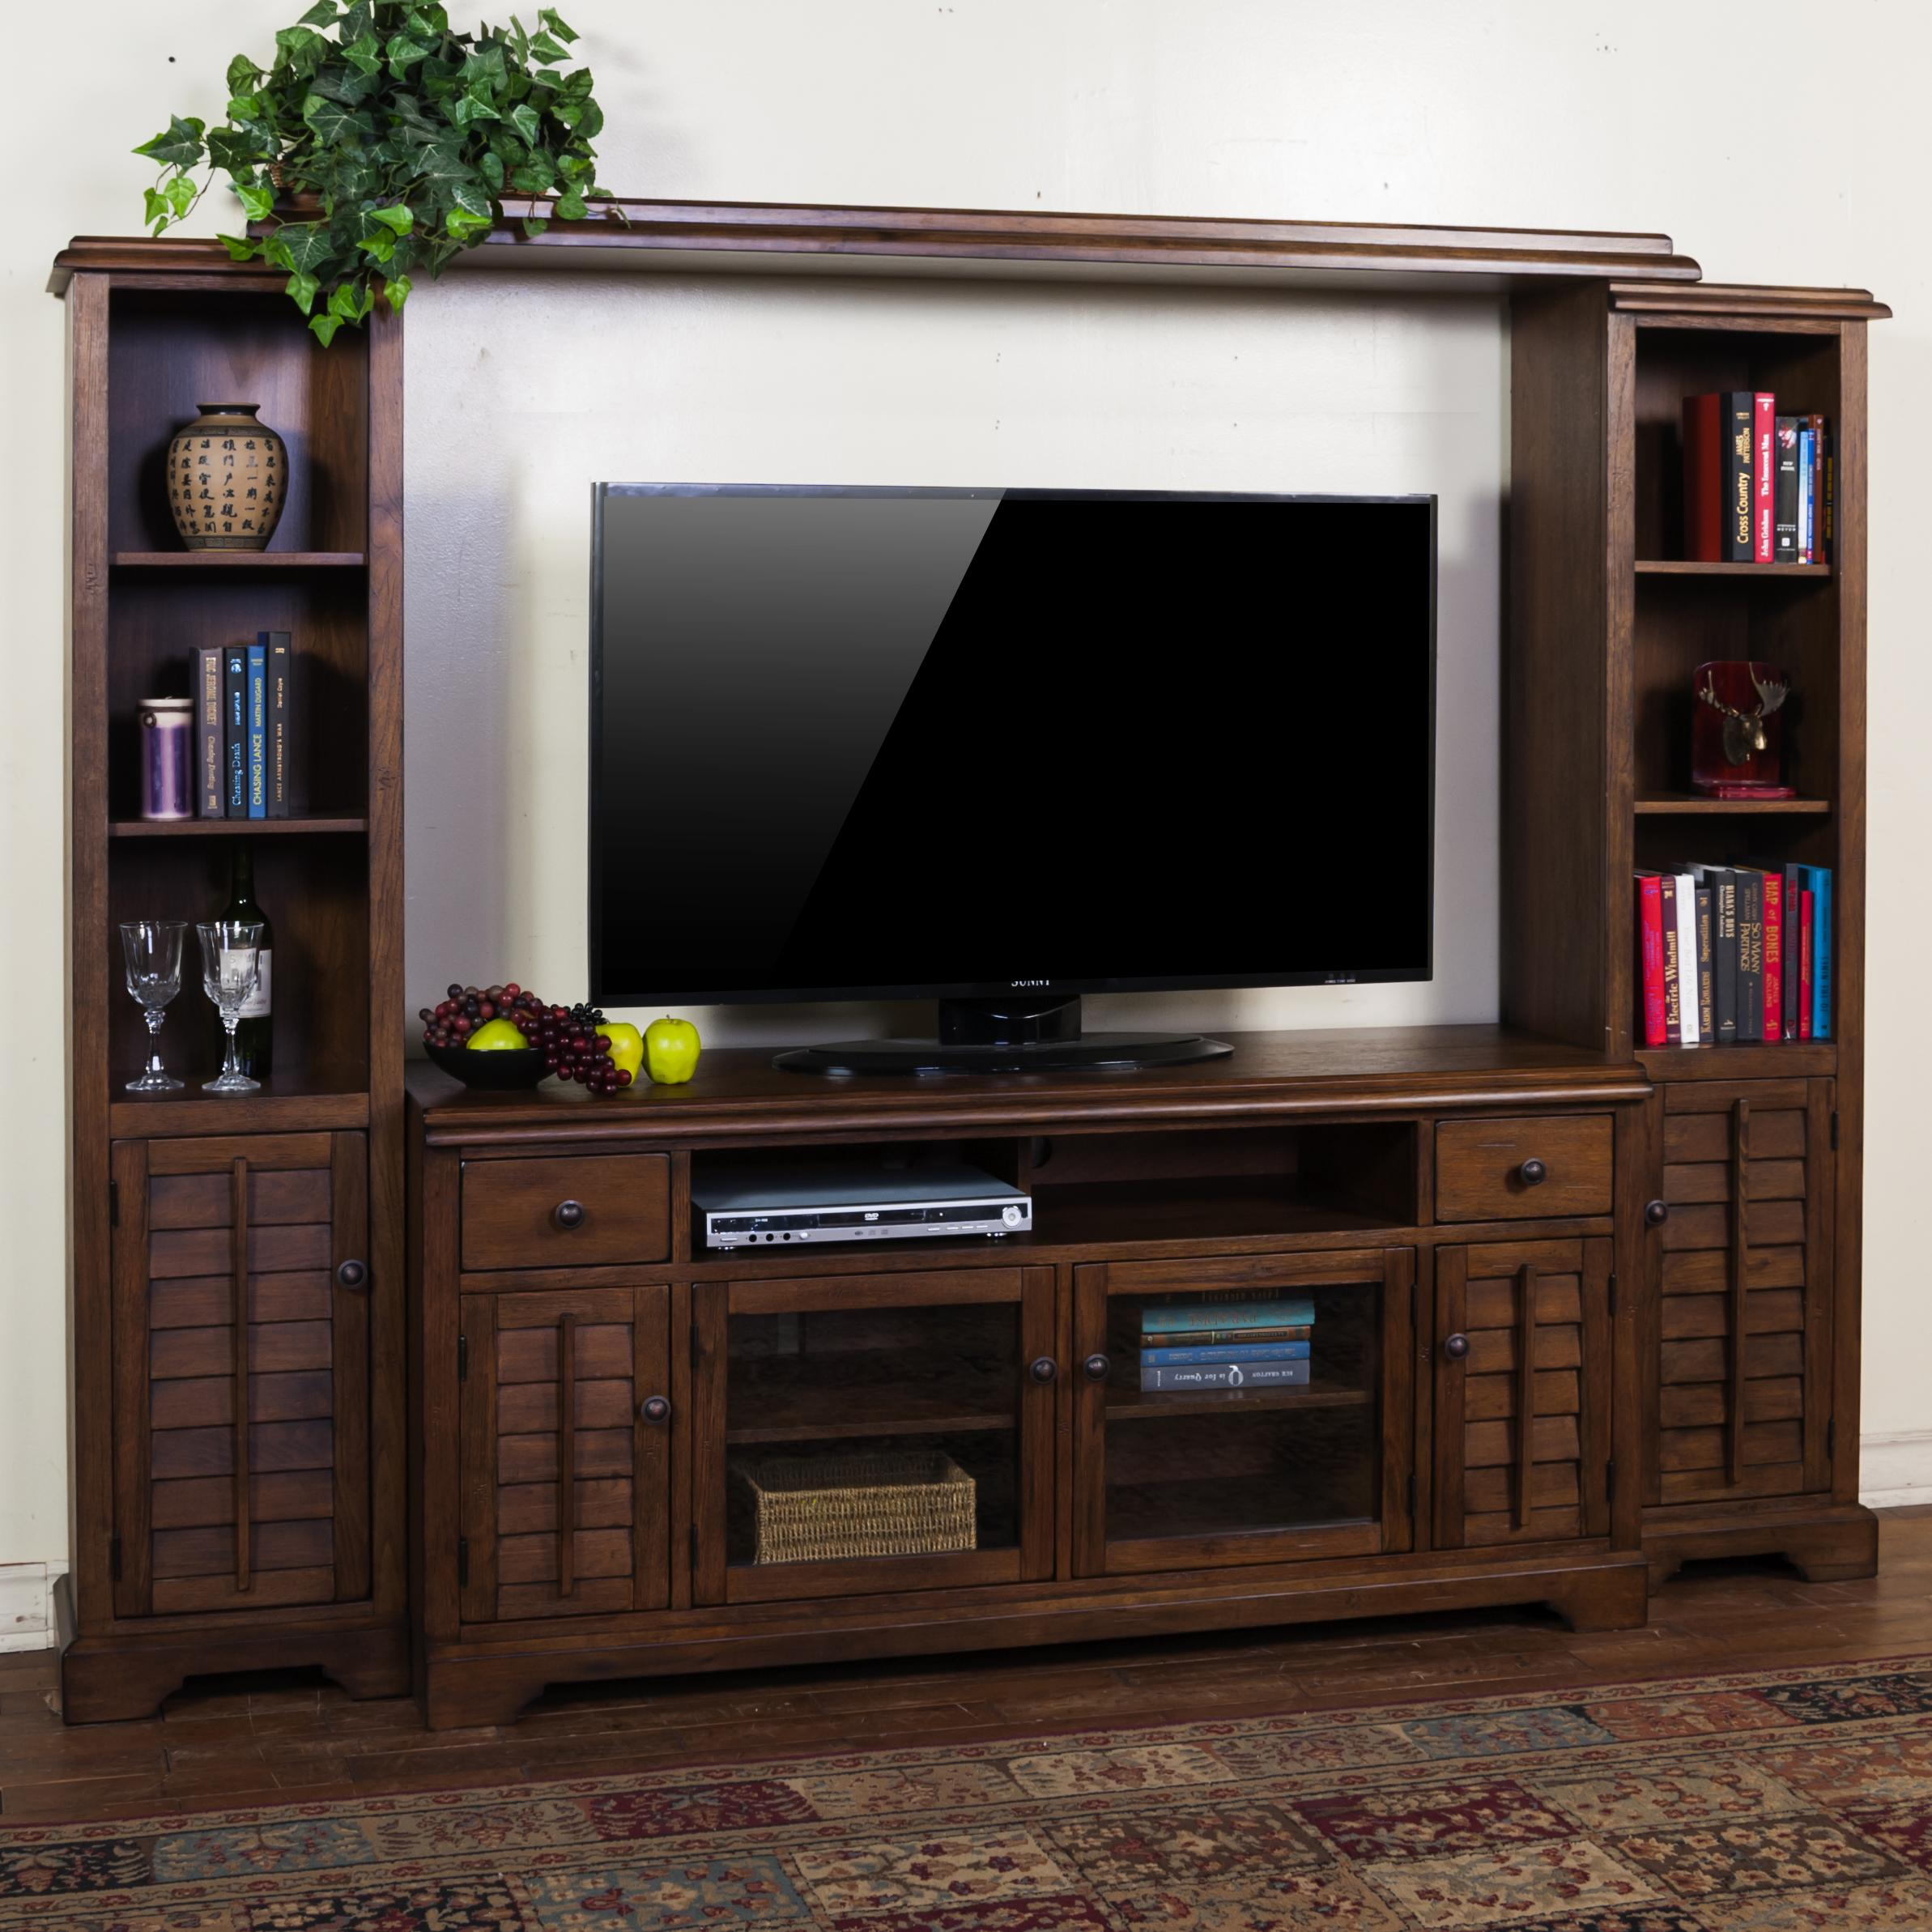 Entertainment Wall Unit W 65 W Tv Console By Sunny: wall tv console design